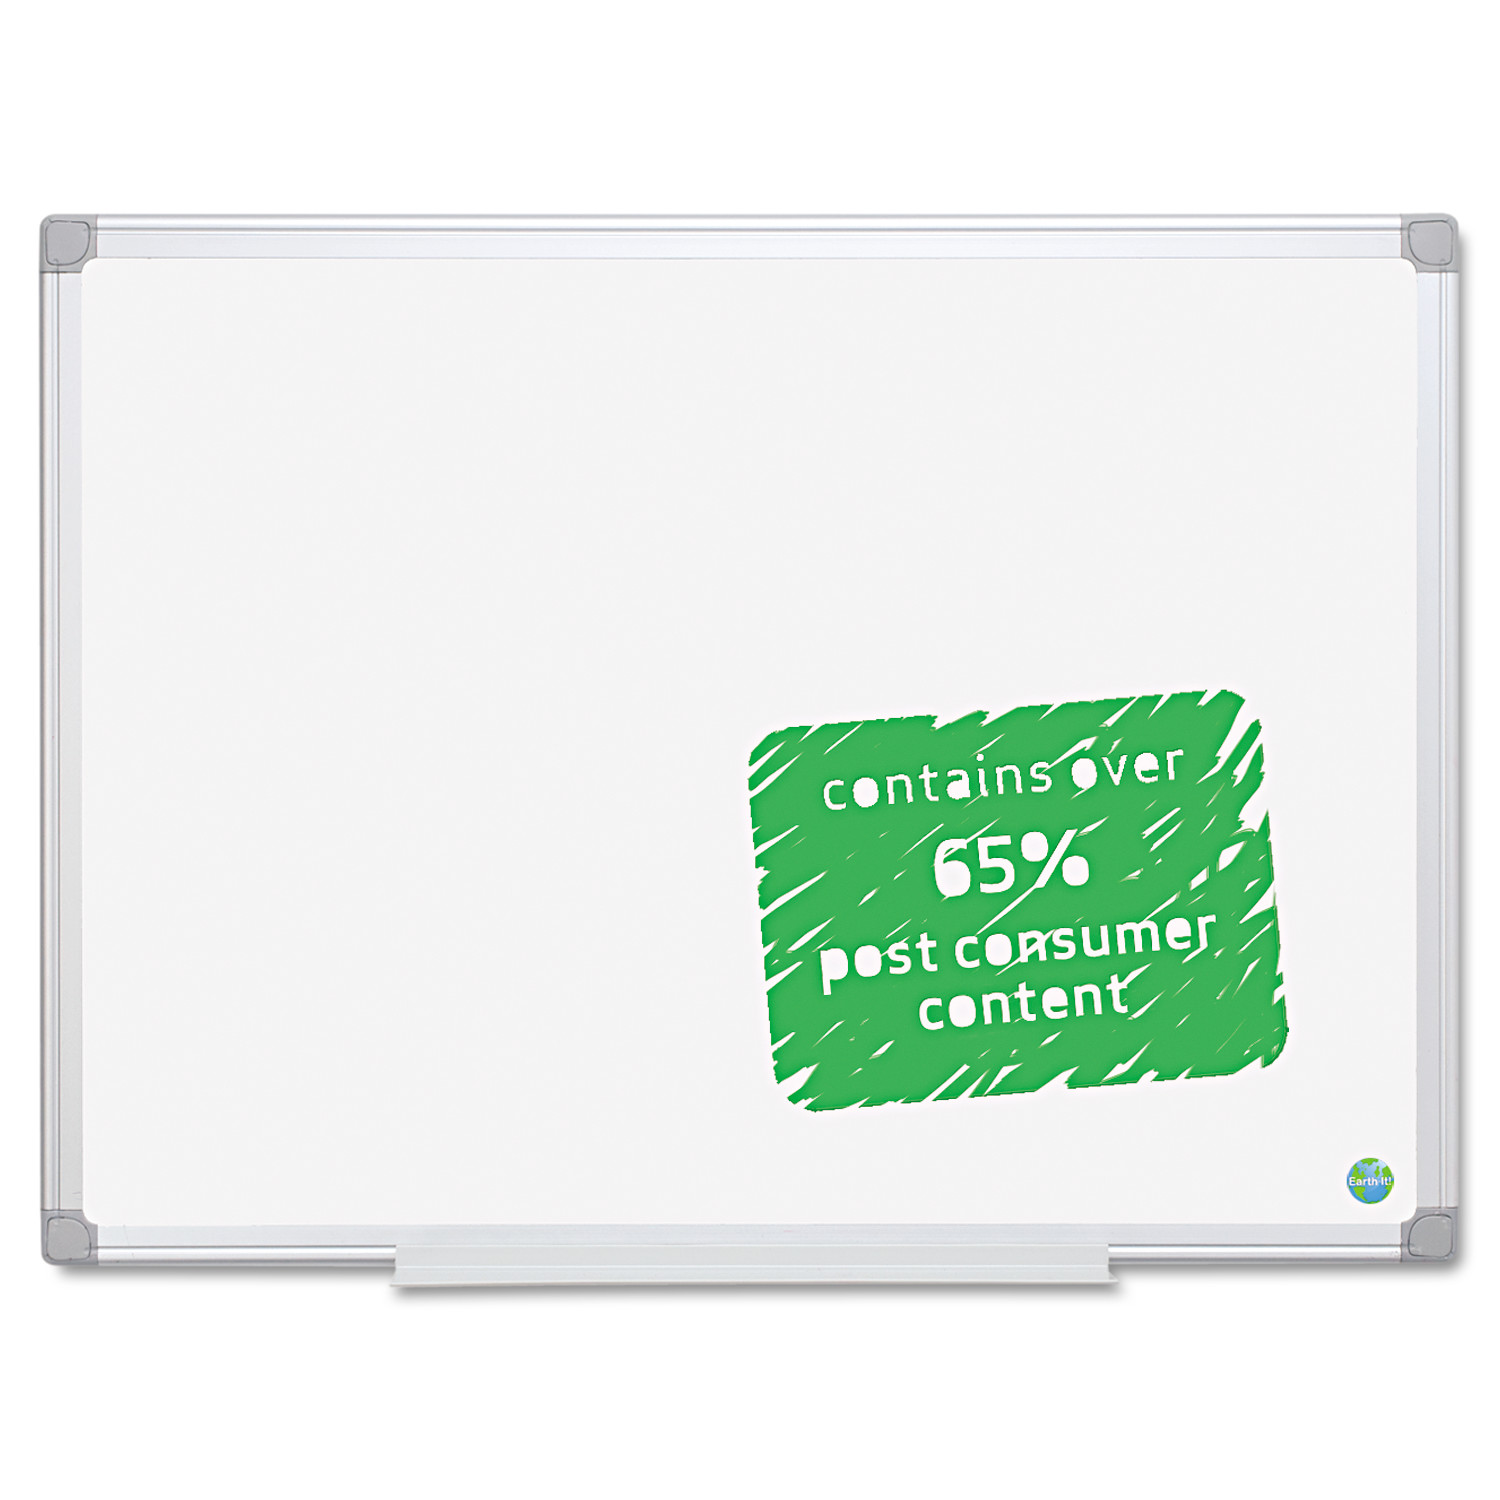 MasterVision Earth Easy-Clean Dry Erase Board, 48 x 72, Aluminum Frame